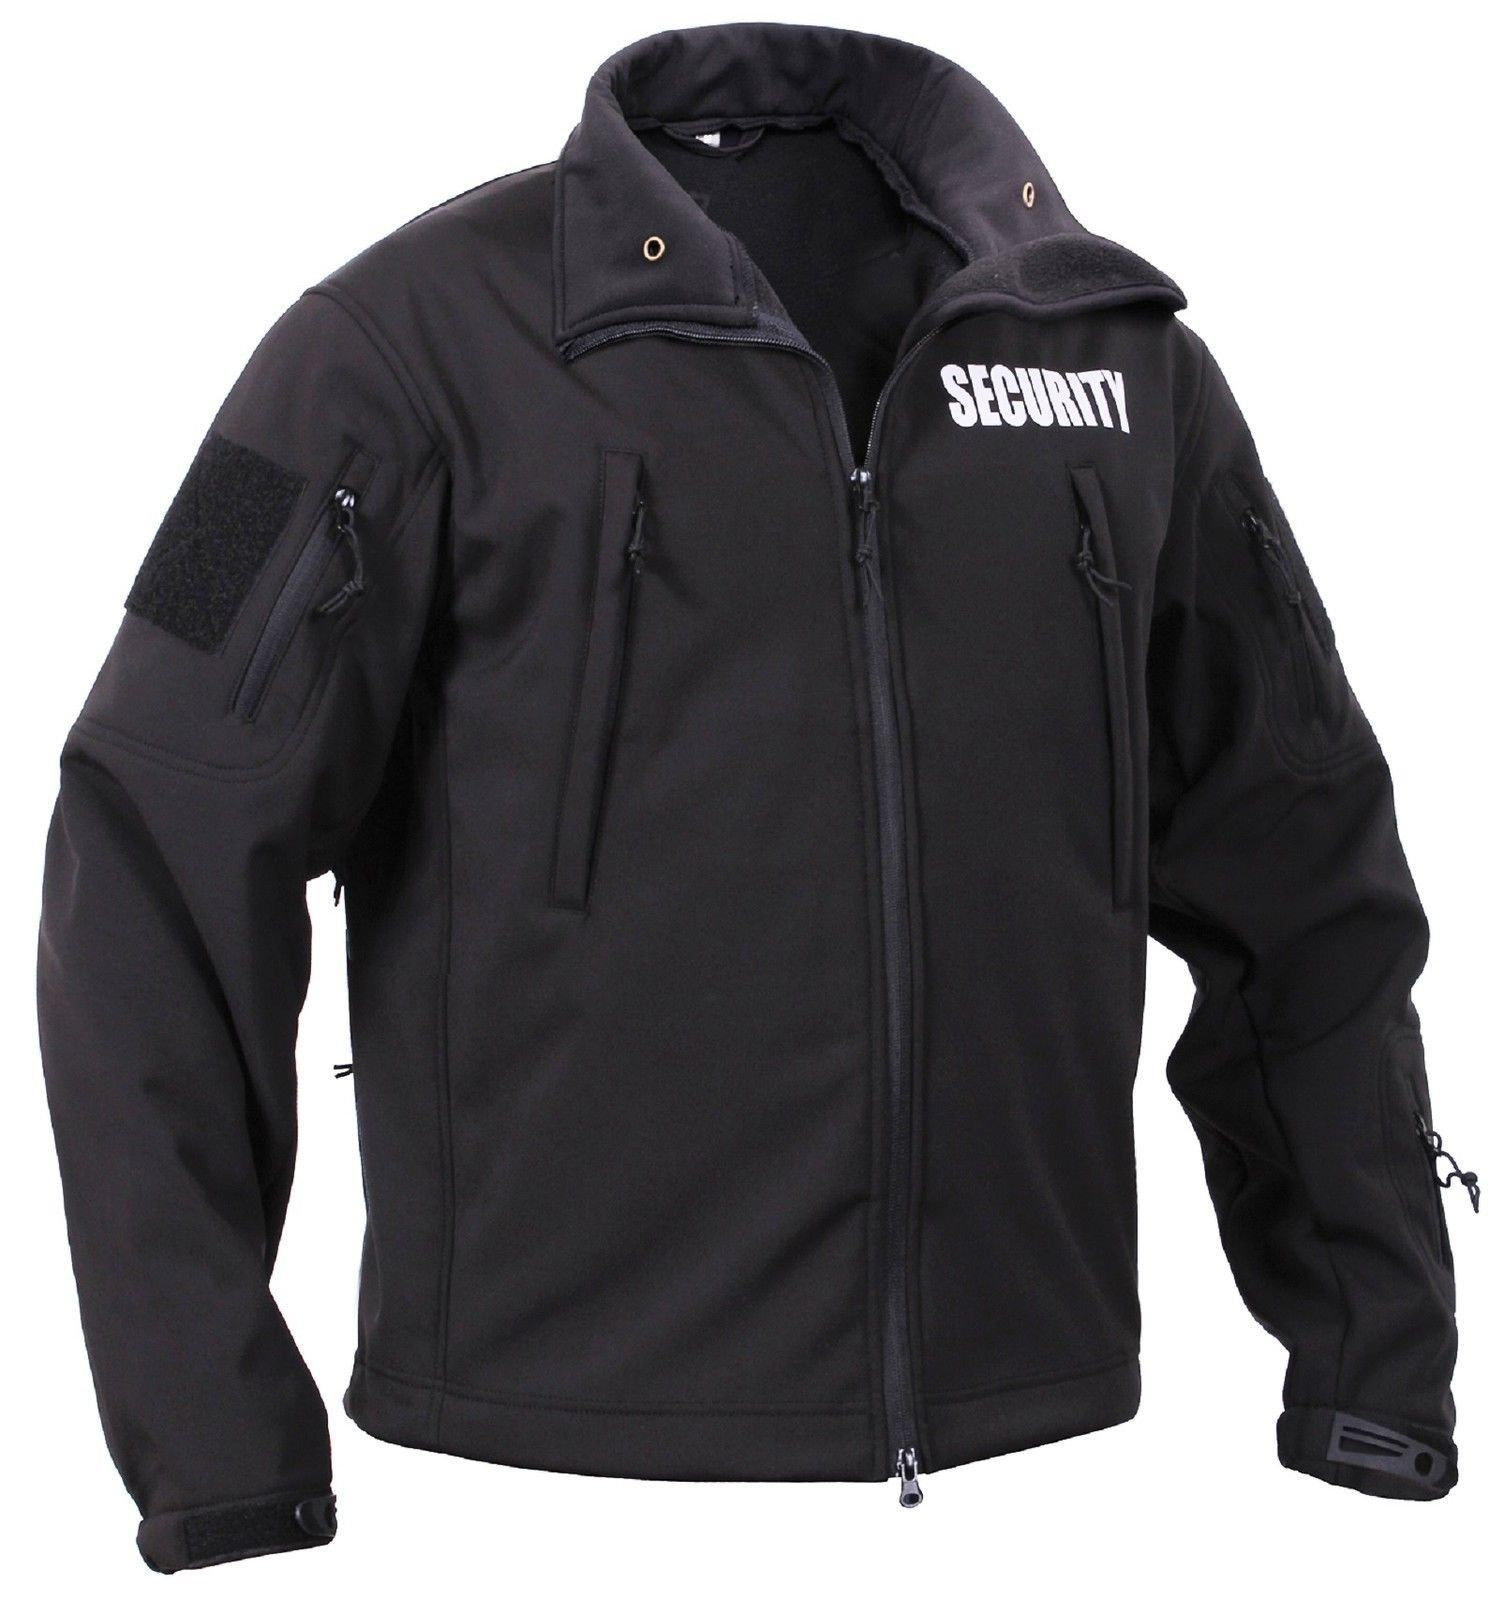 Men S Black Special Ops Soft Shell Security Tactical Jacket Waterproof Coat Tactical Jacket Winter Outfits Men Soft Shell Jacket [ 1600 x 1504 Pixel ]